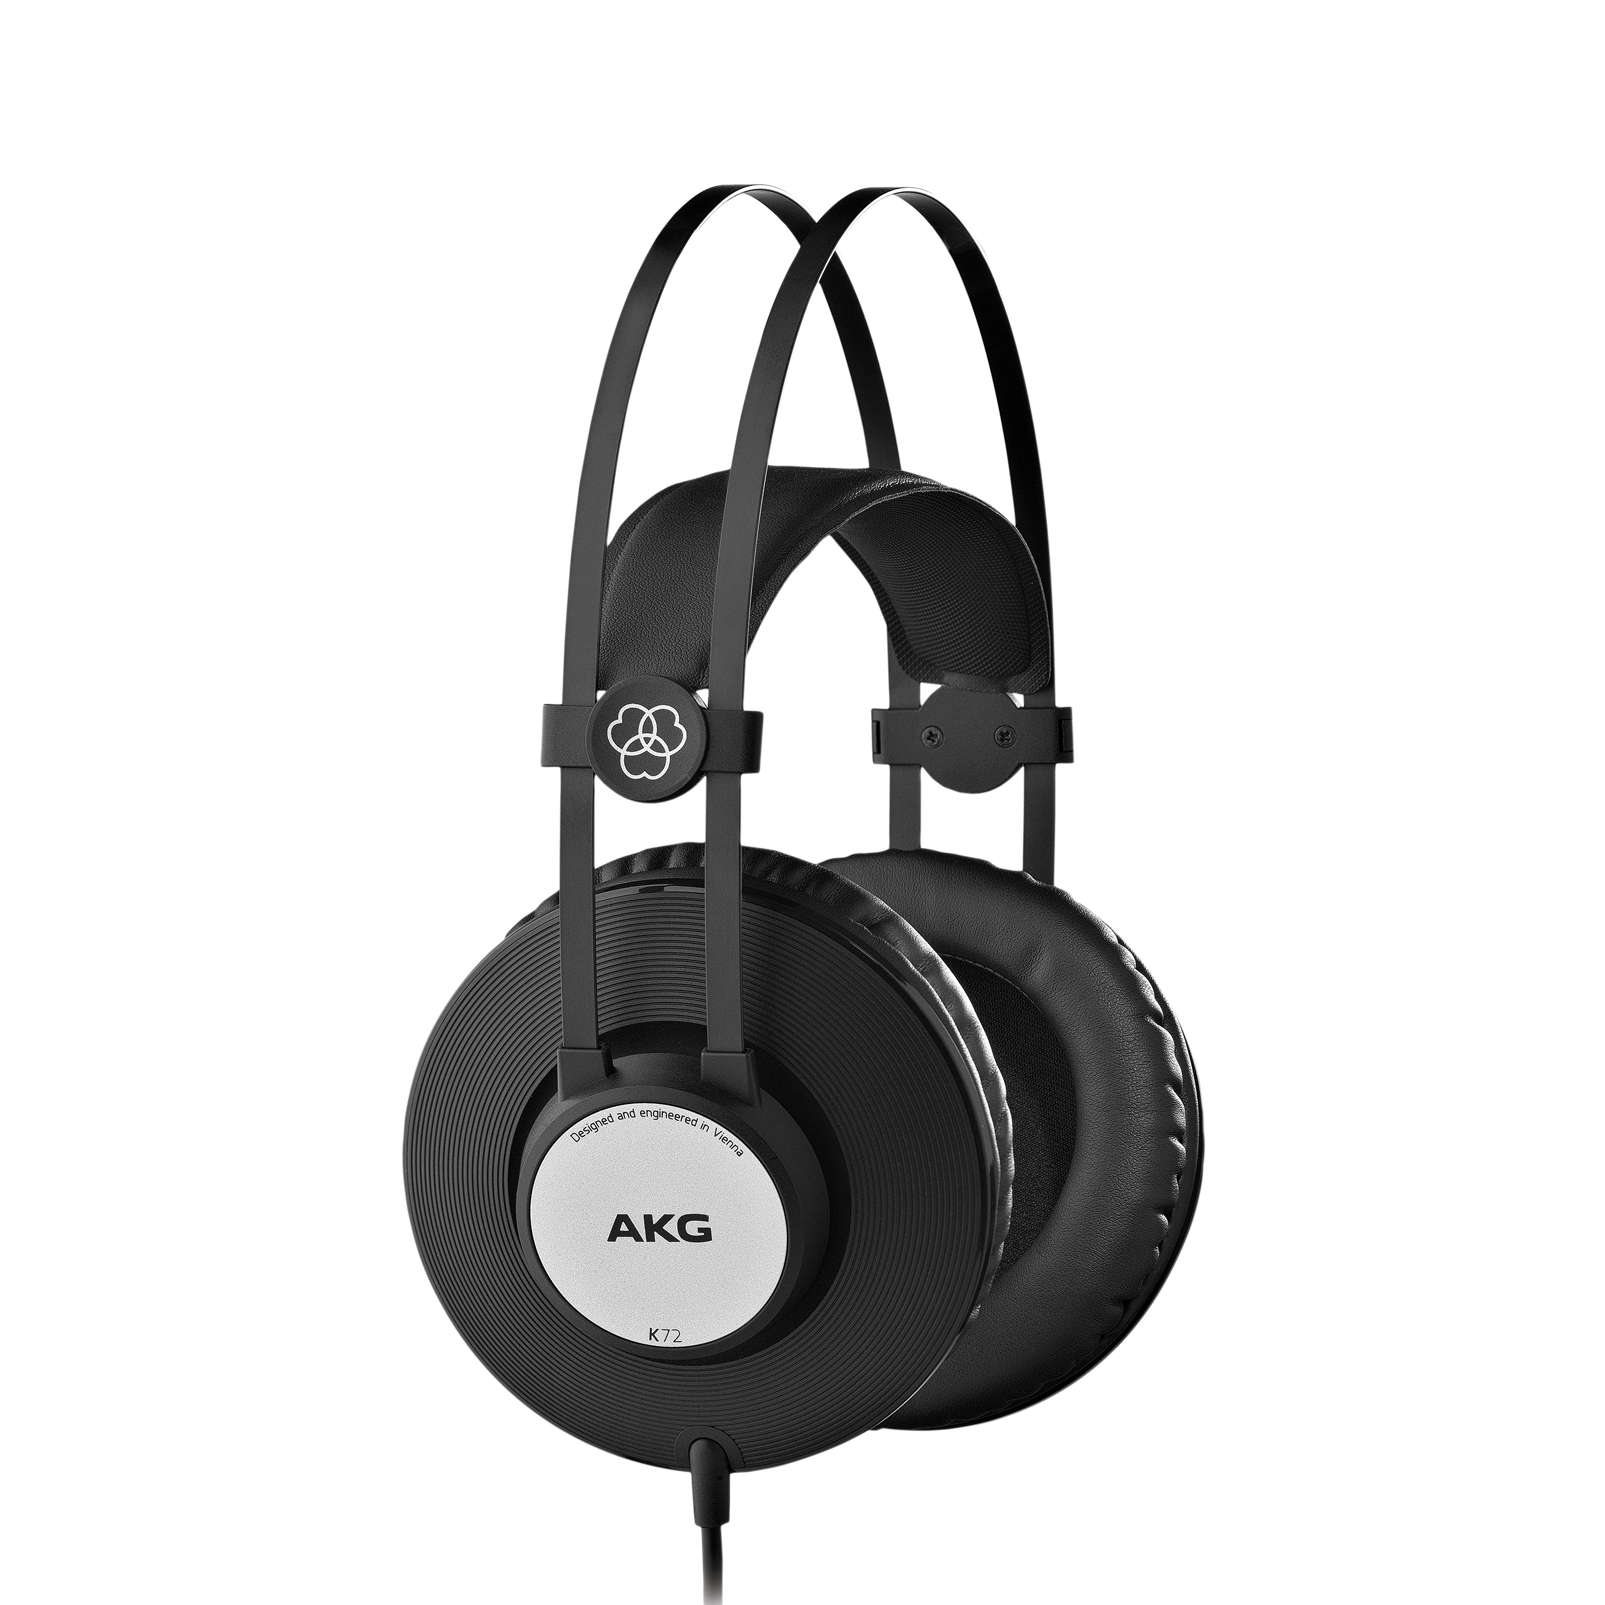 K72 - Black - Closed-back studio headphones - Hero